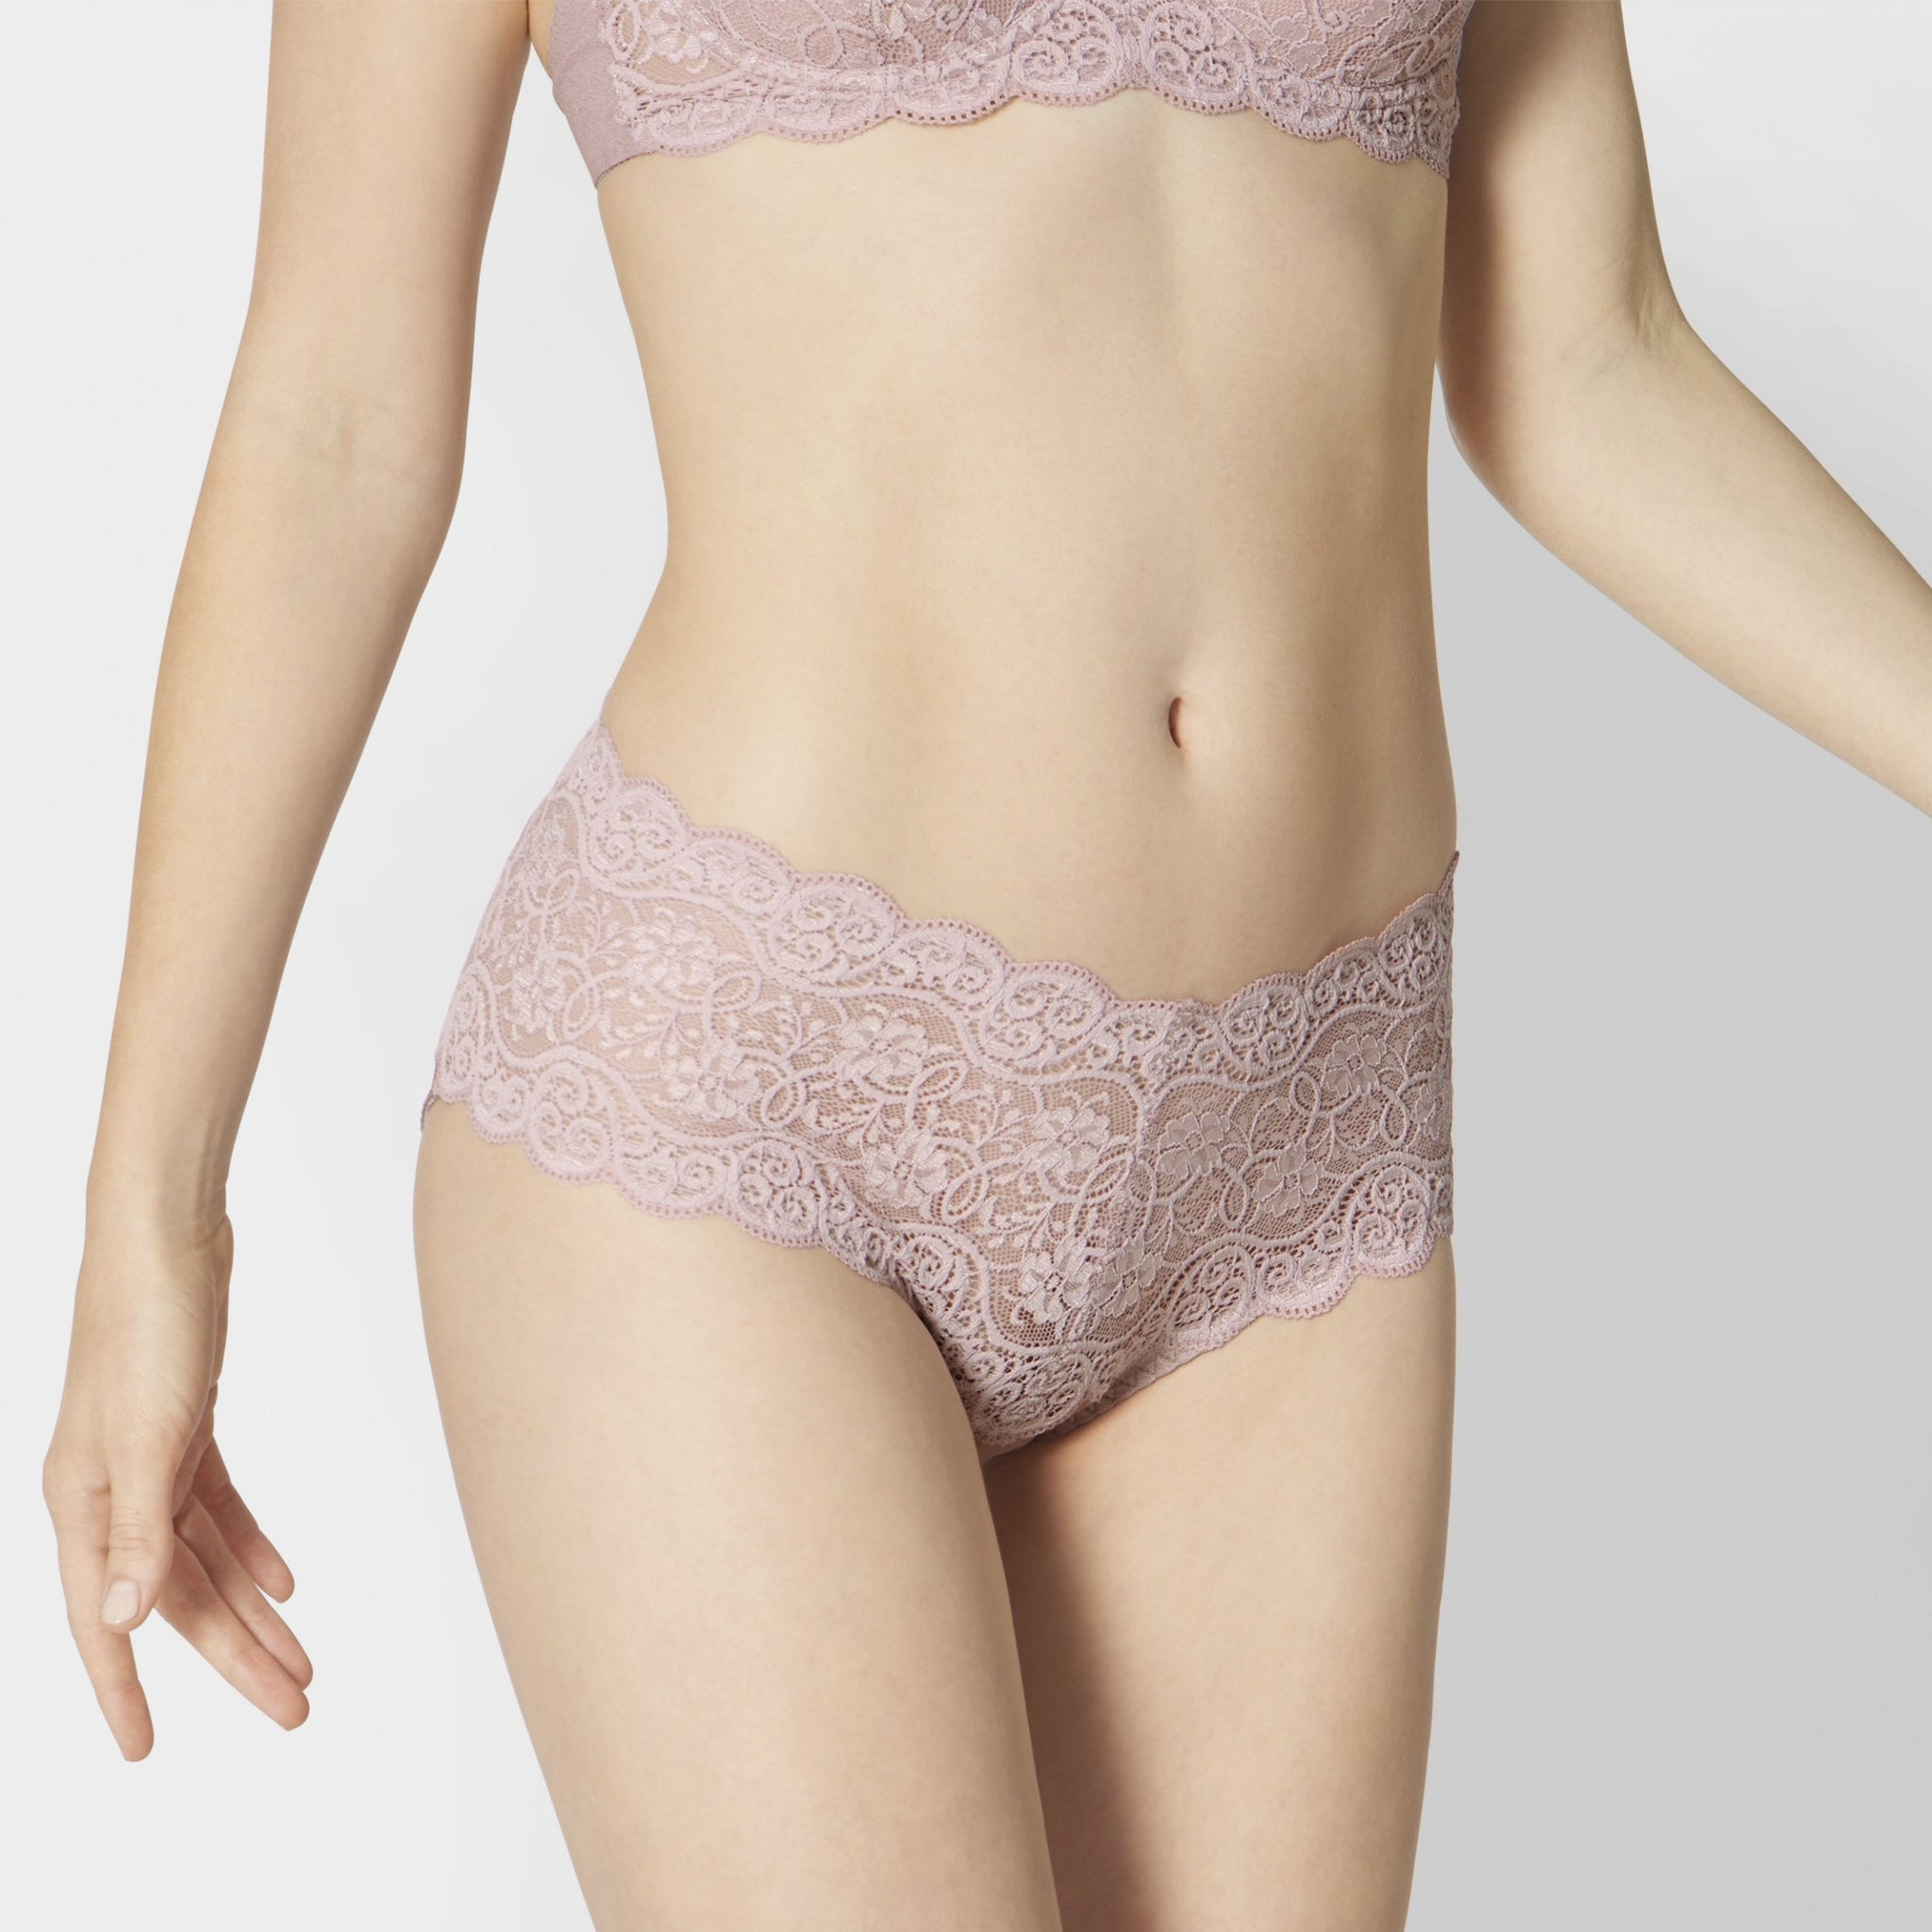 Triumph-Amourette 300 Maxi-Ladies Brief-Skintone